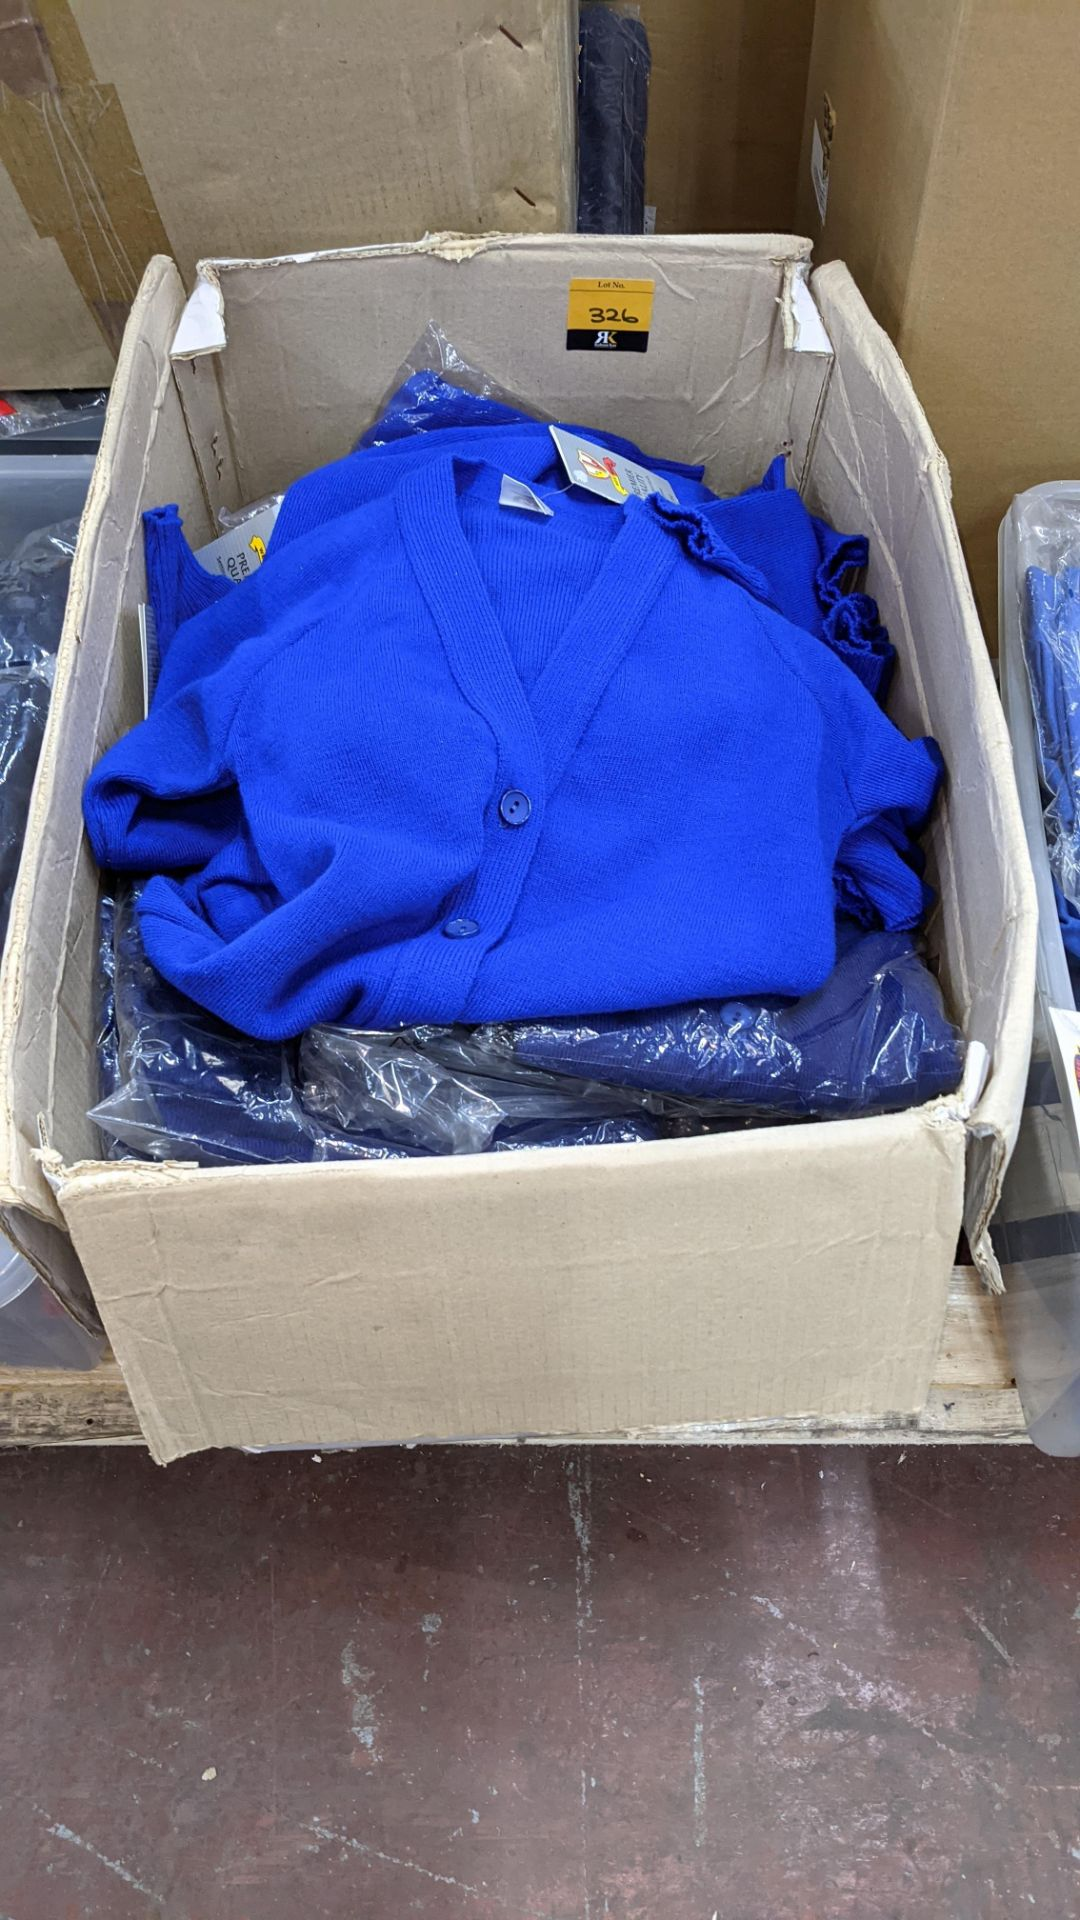 Approx 26 off blue button up children's tops - the contents of 1 large box